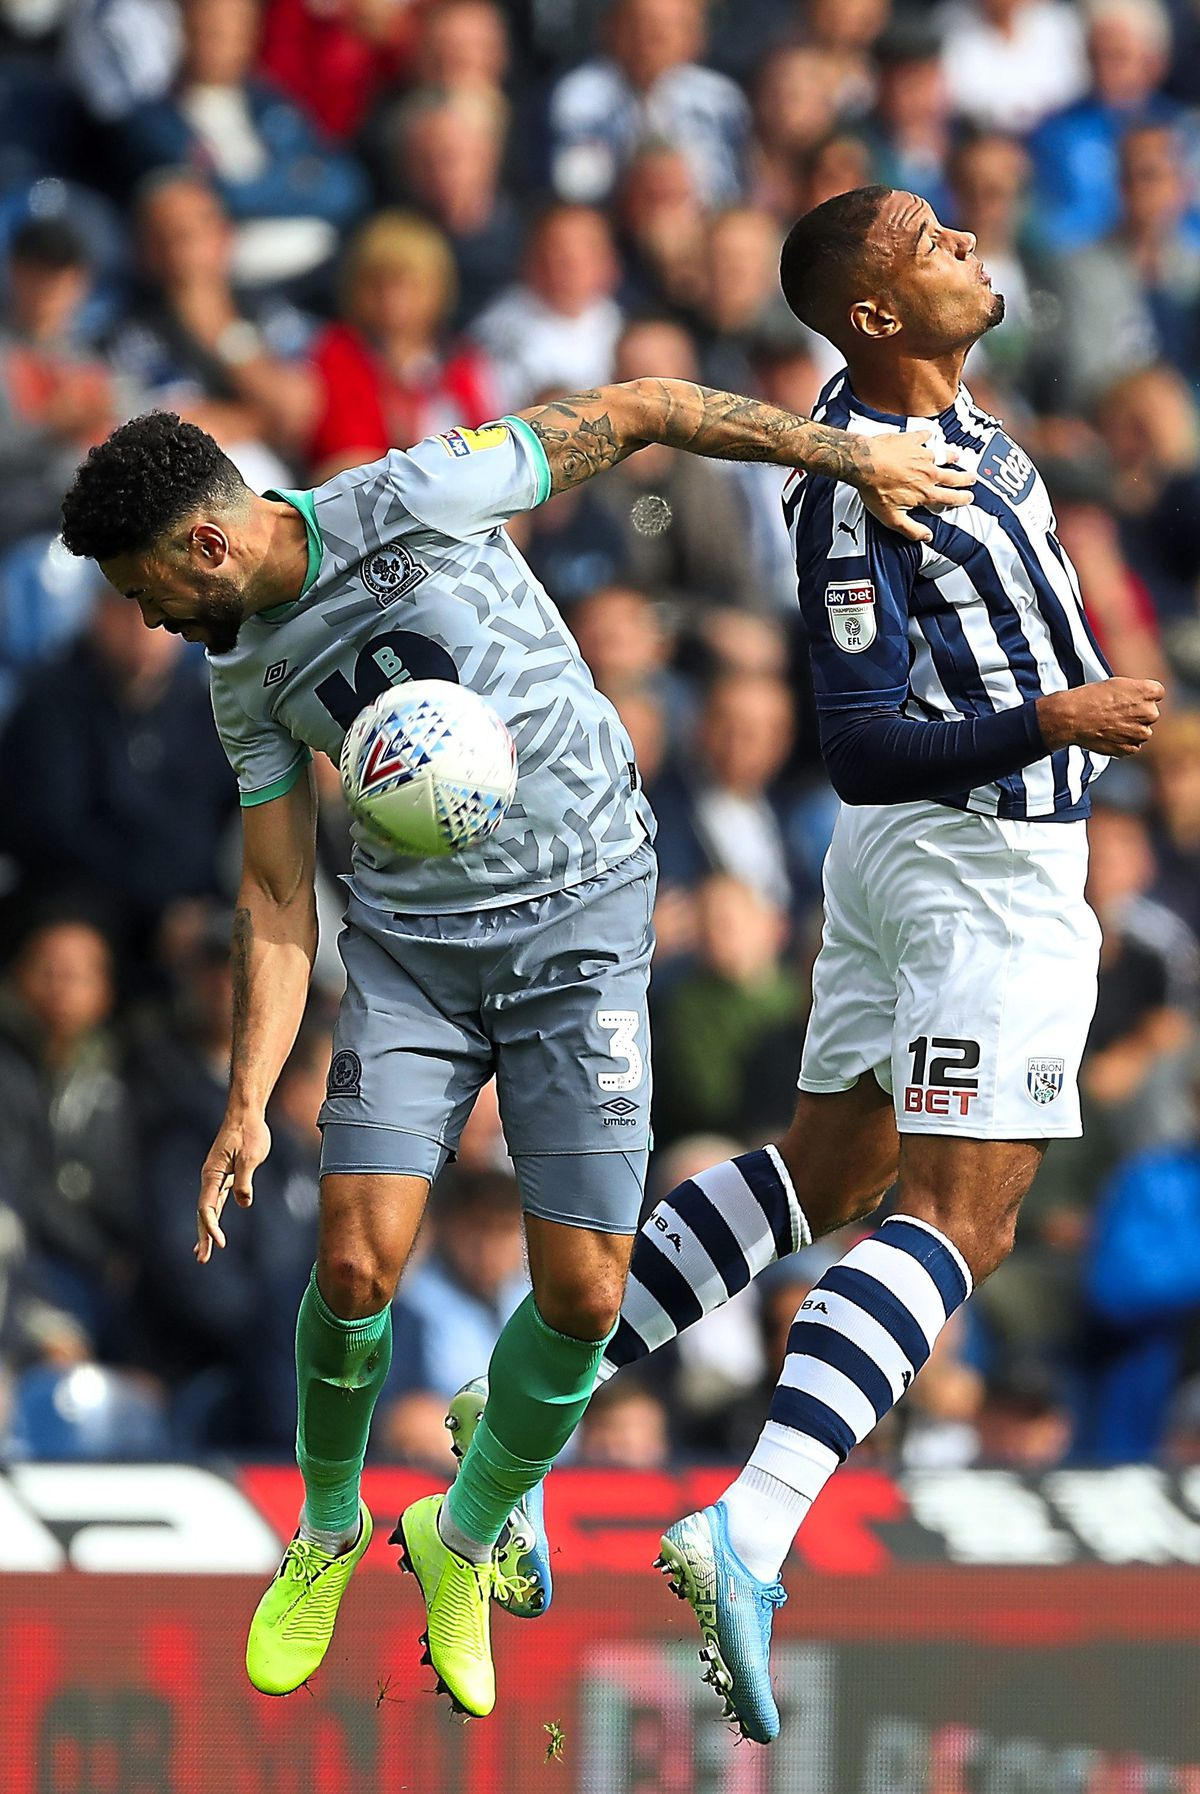 Derrick Williams of Blackburn Rovers and Kenneth Zohore of West Bromwich Albion. (AMA)